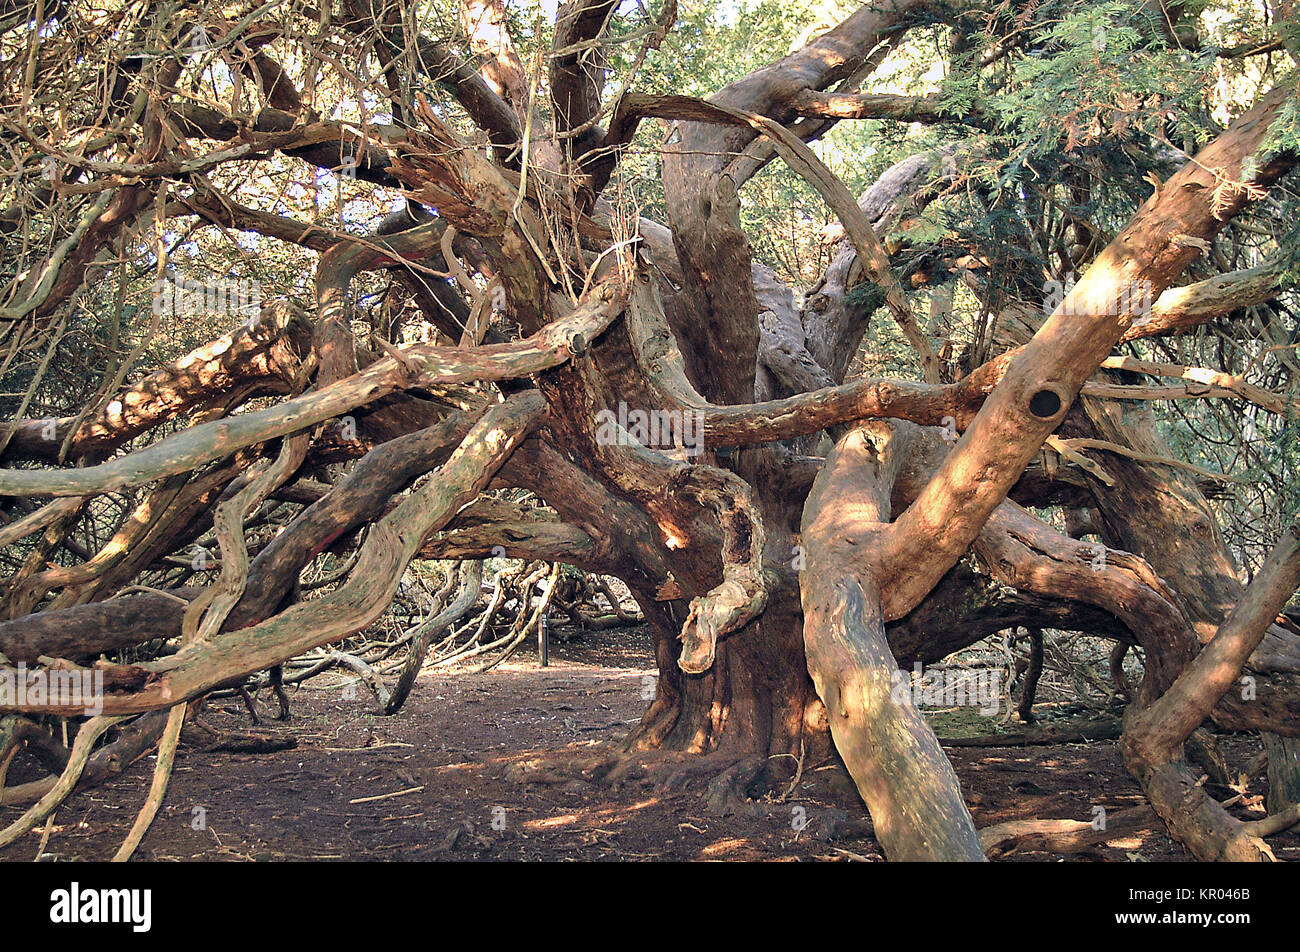 Ancient Yew Trees in Kingley Vale National Nature Reserve, Chichester, England - Stock Image